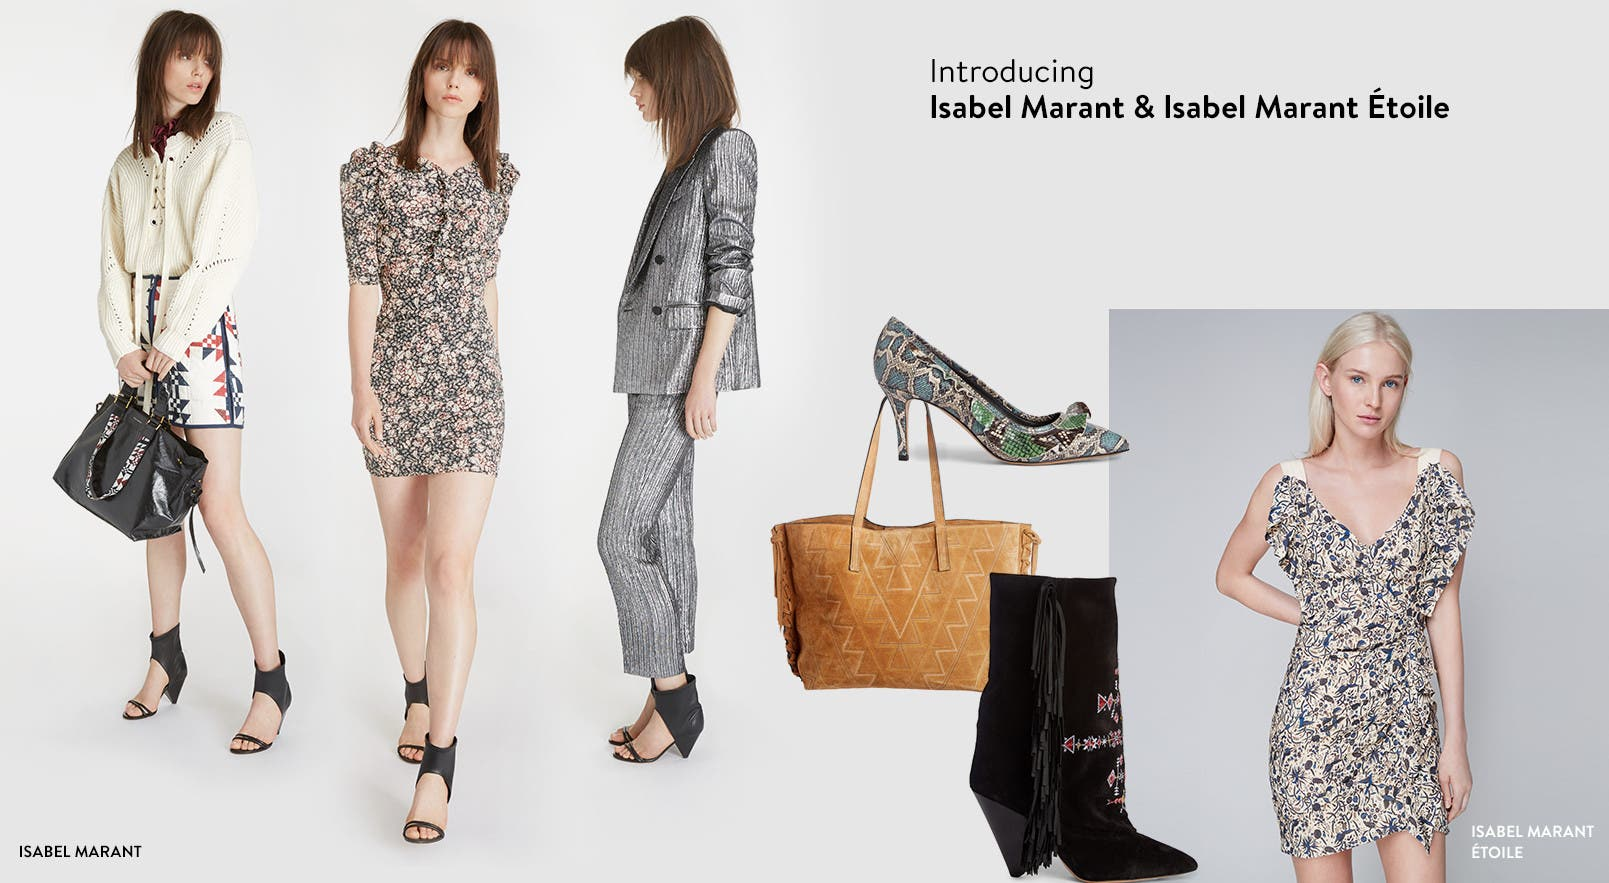 Introducing Isabel Marant and Isabel Marant Étoile shoes, handbags and clothing.